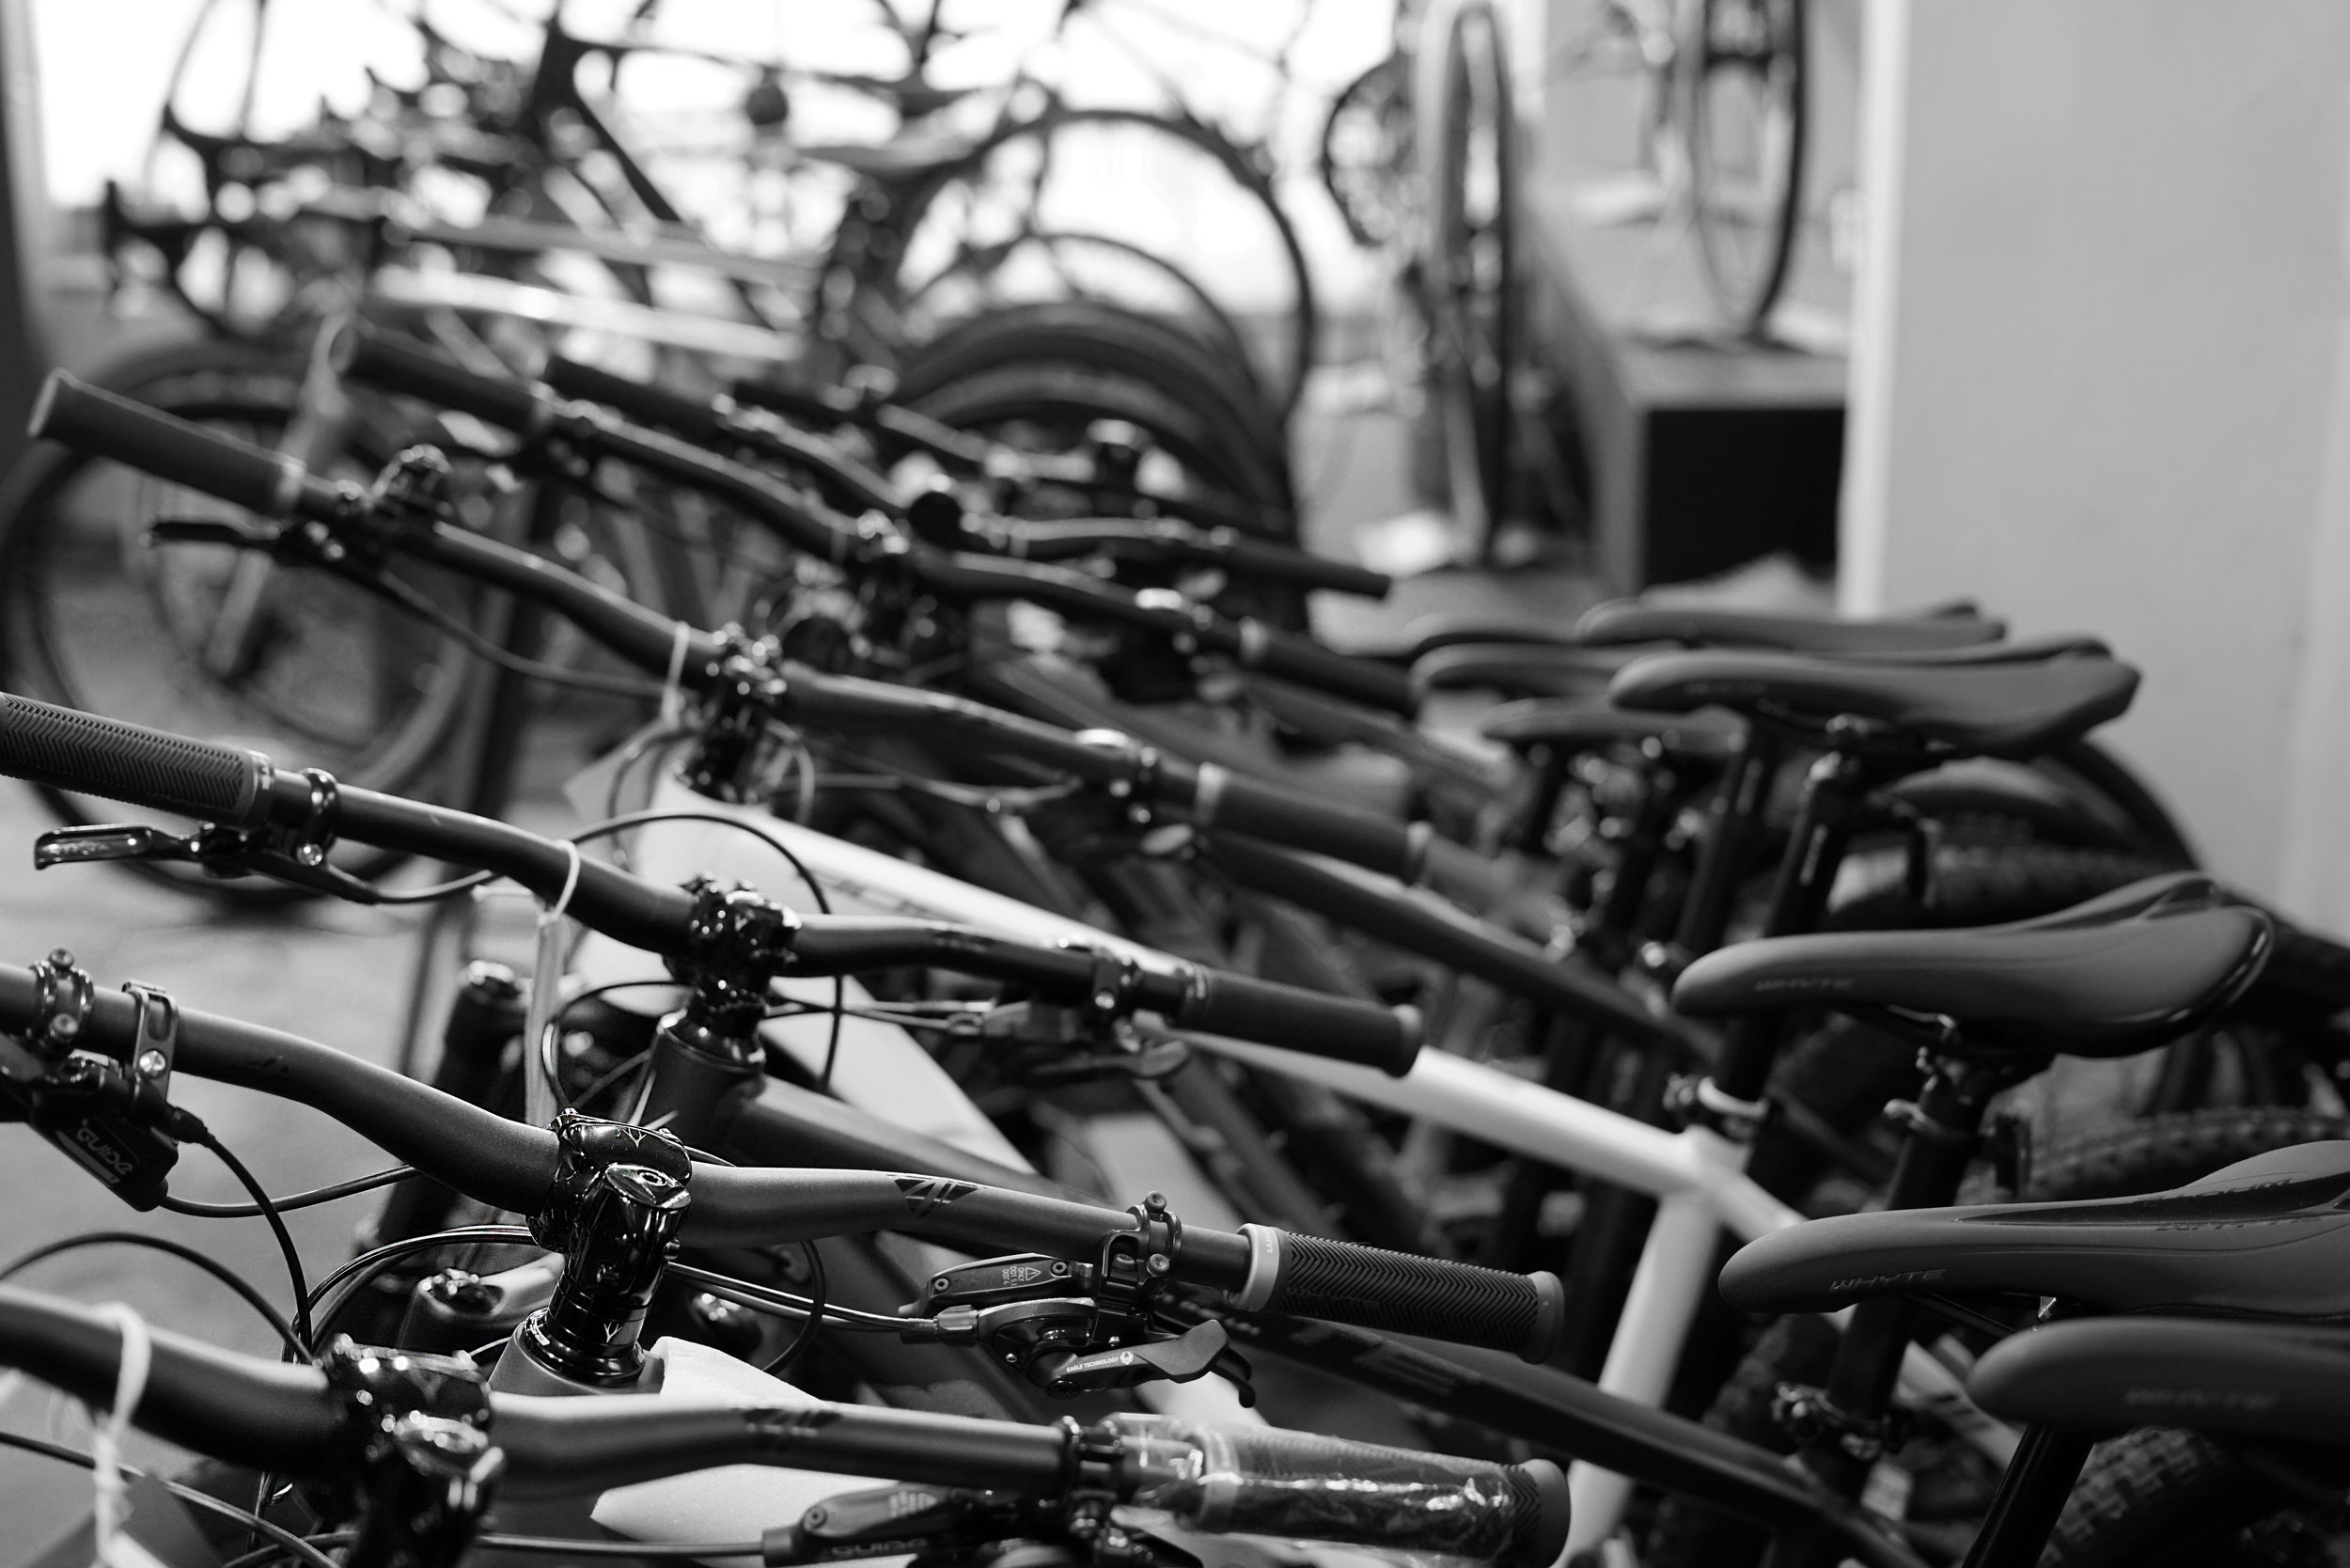 Campagnolo Pro Shop - We are a Campagnolo pro shop, that means we are fully trained by Campagnolo to service and repair all types of their products. We're also lucky to have the legend that is John Poyzer, who eats/sleeps/dreams Campagnolo. There's nothing Campagnolo have ever made that he doesn't know about, and we are the lucky team of peeps that he trains!